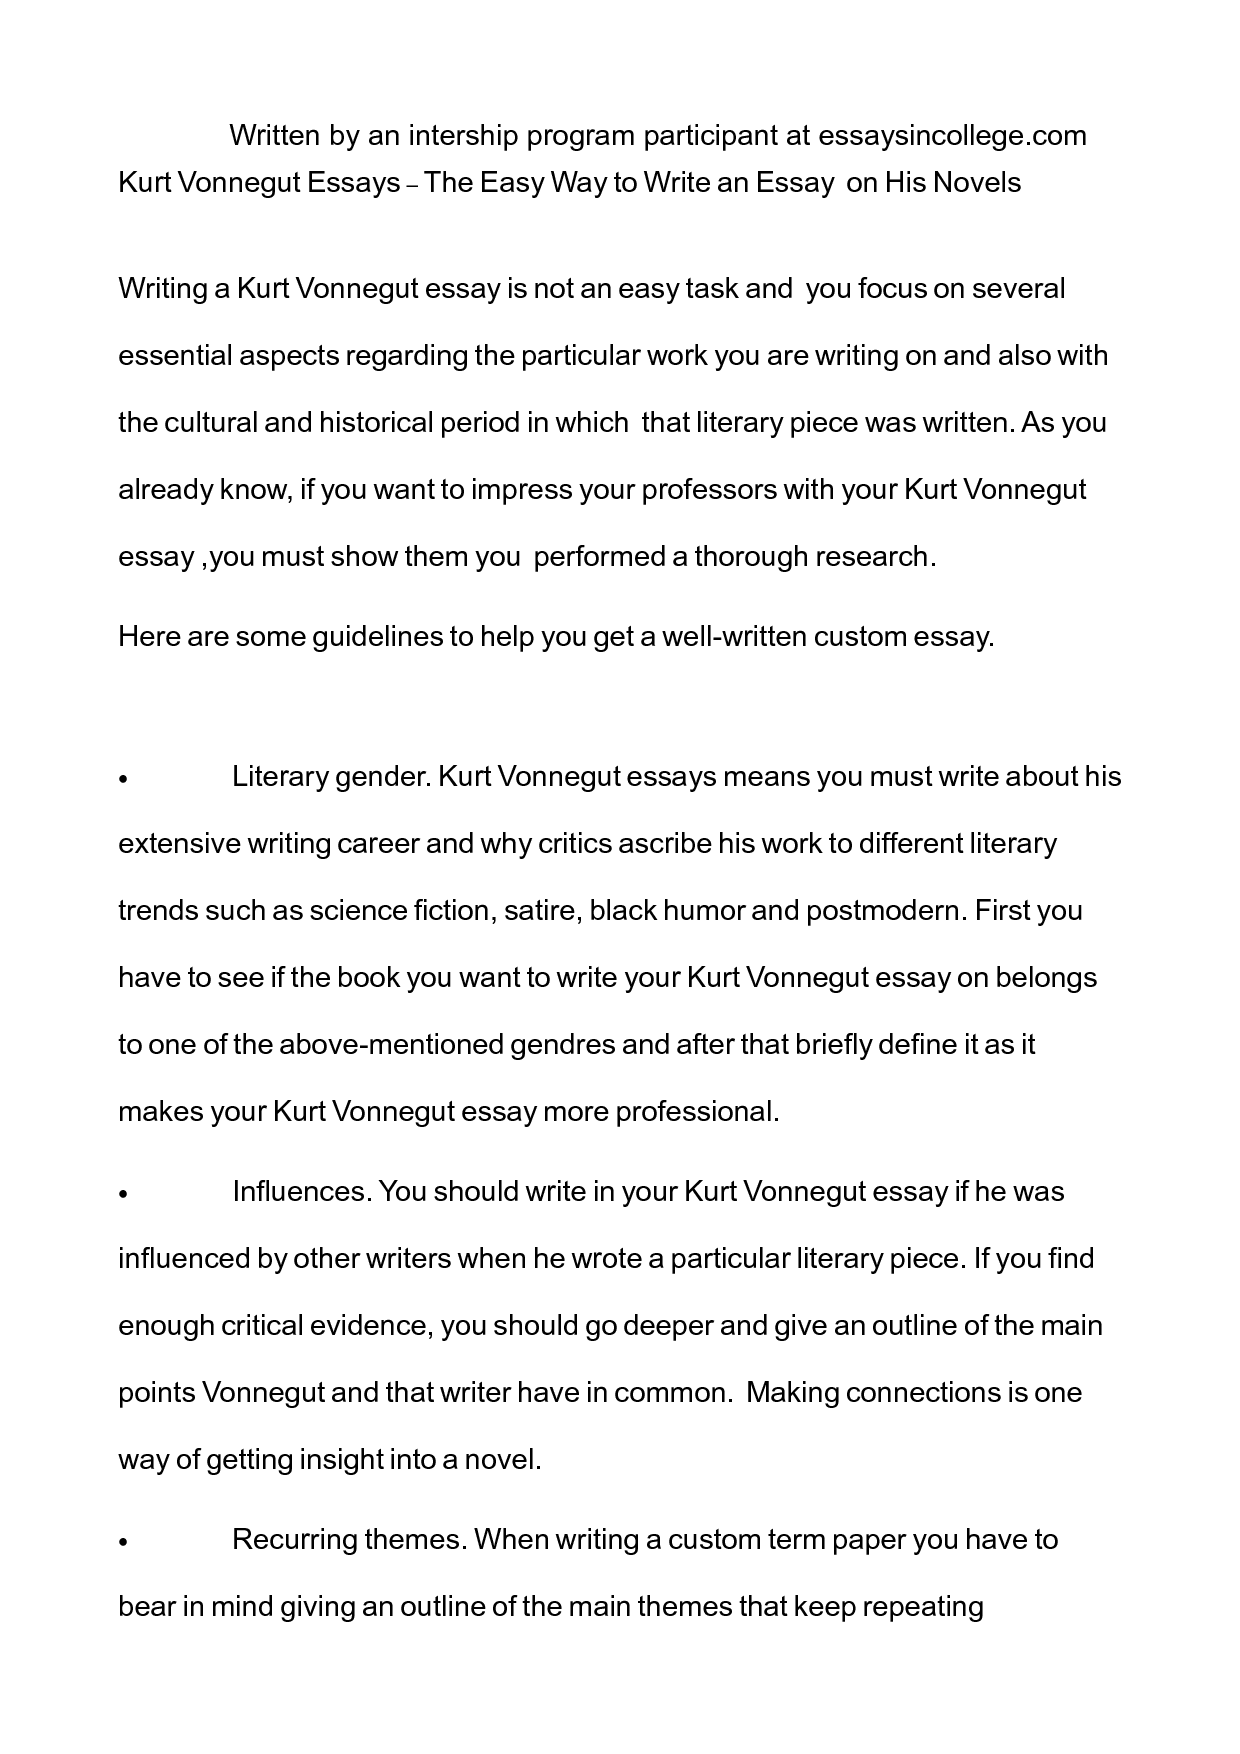 Essay Writing Examples For High School Easy A Essay Pay For My Professional Academic Essay On Shakespeare  Easy  Way To Write  Essay On My School In English also Good High School Essay Topics Easy Way To Write An Essay  Underfontanacountryinncom Thesis Argumentative Essay